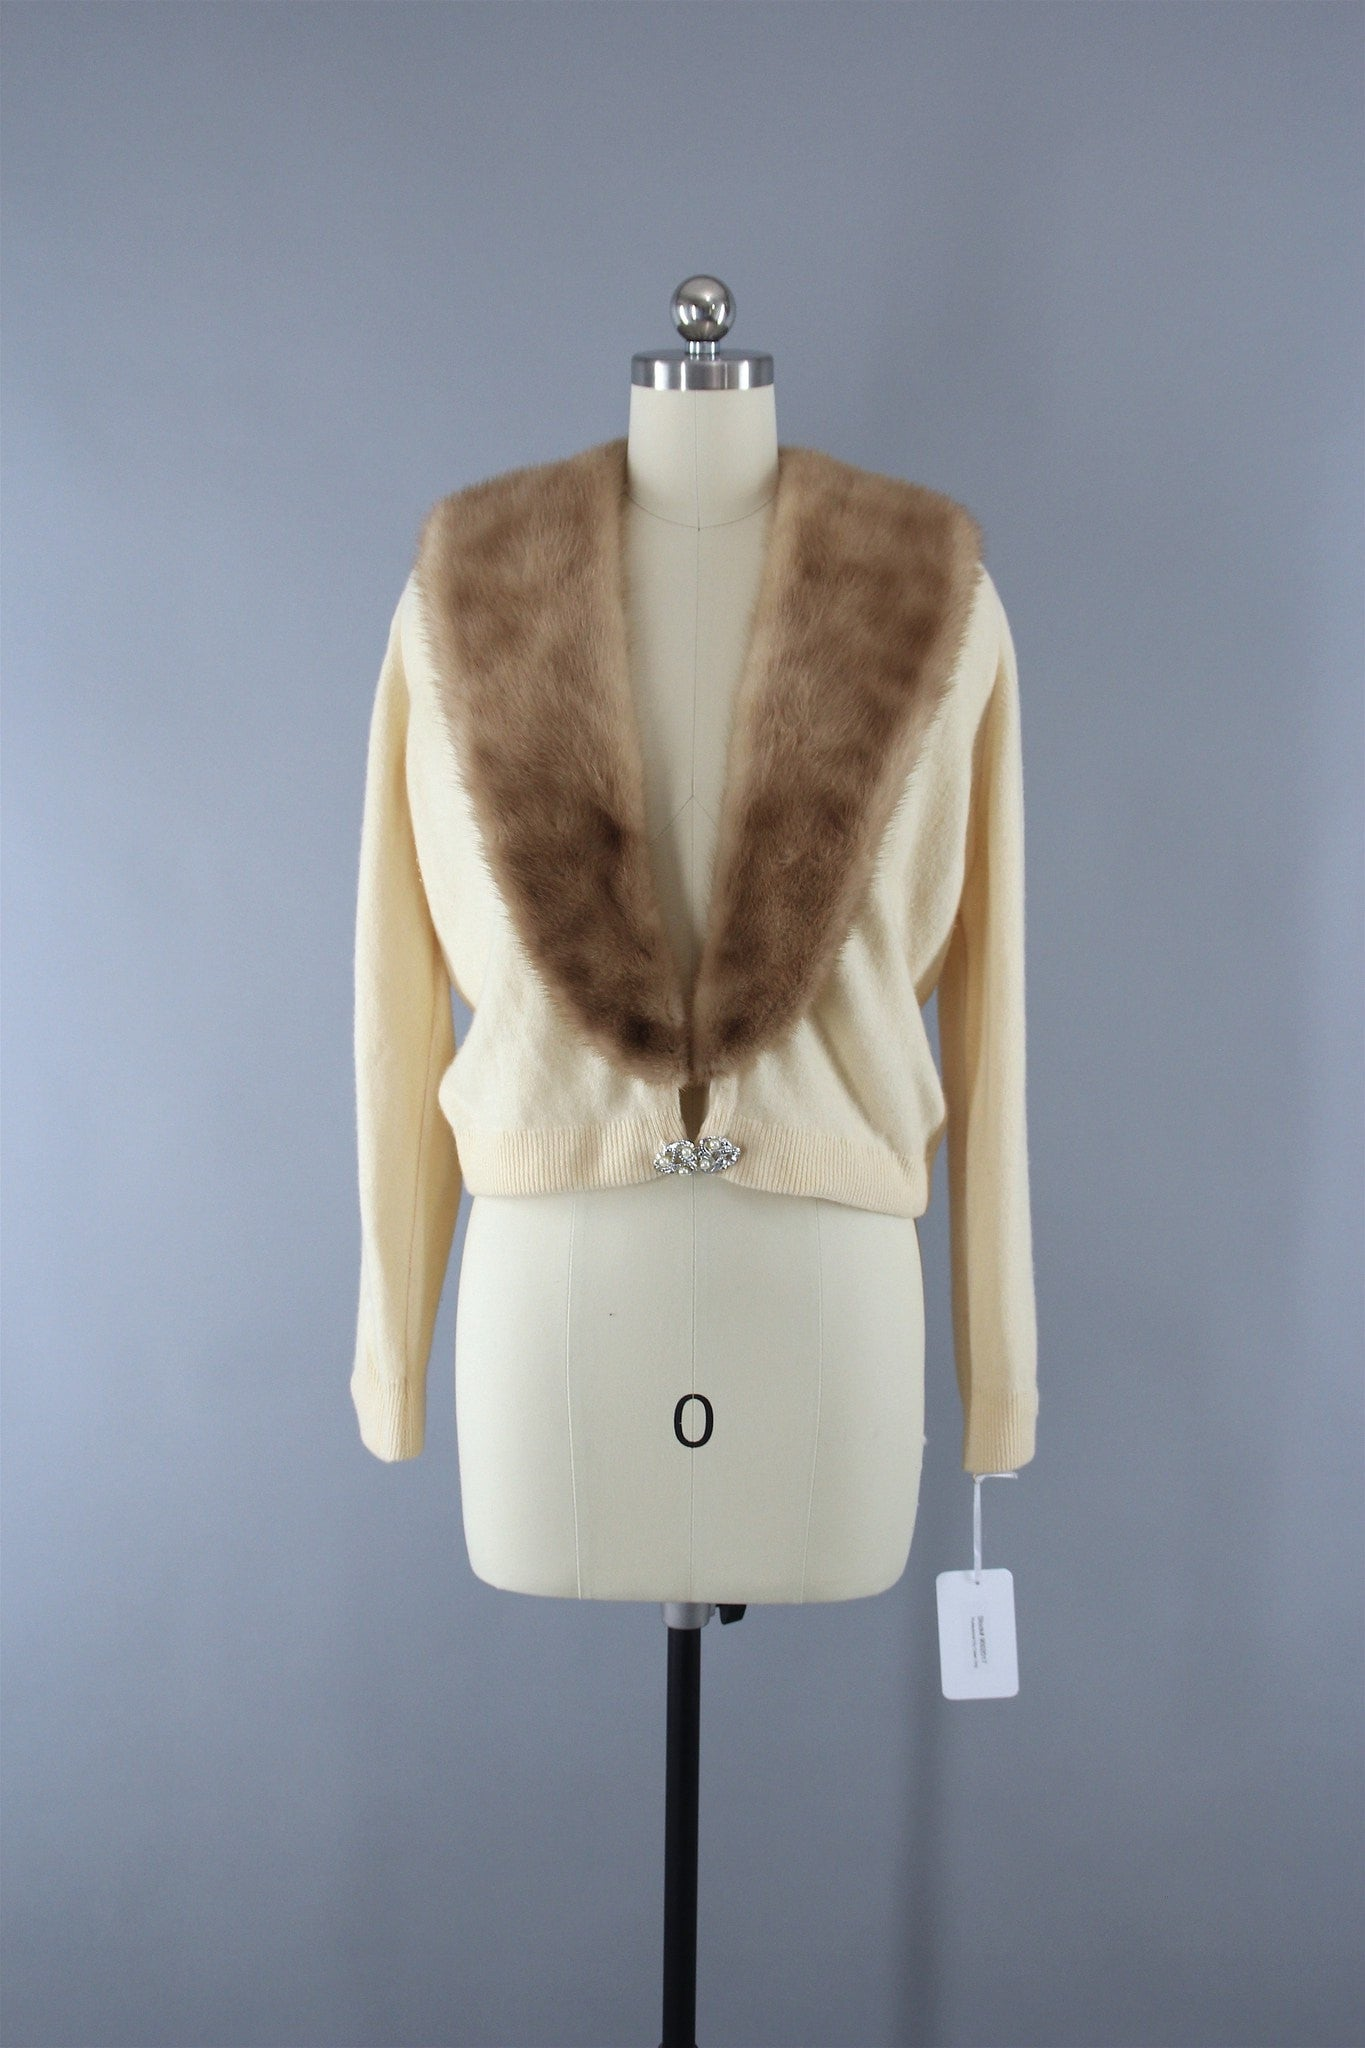 Vintage 1950s Ivory Cashmere Sweater with Fur Collar Tops ThisBlueBird